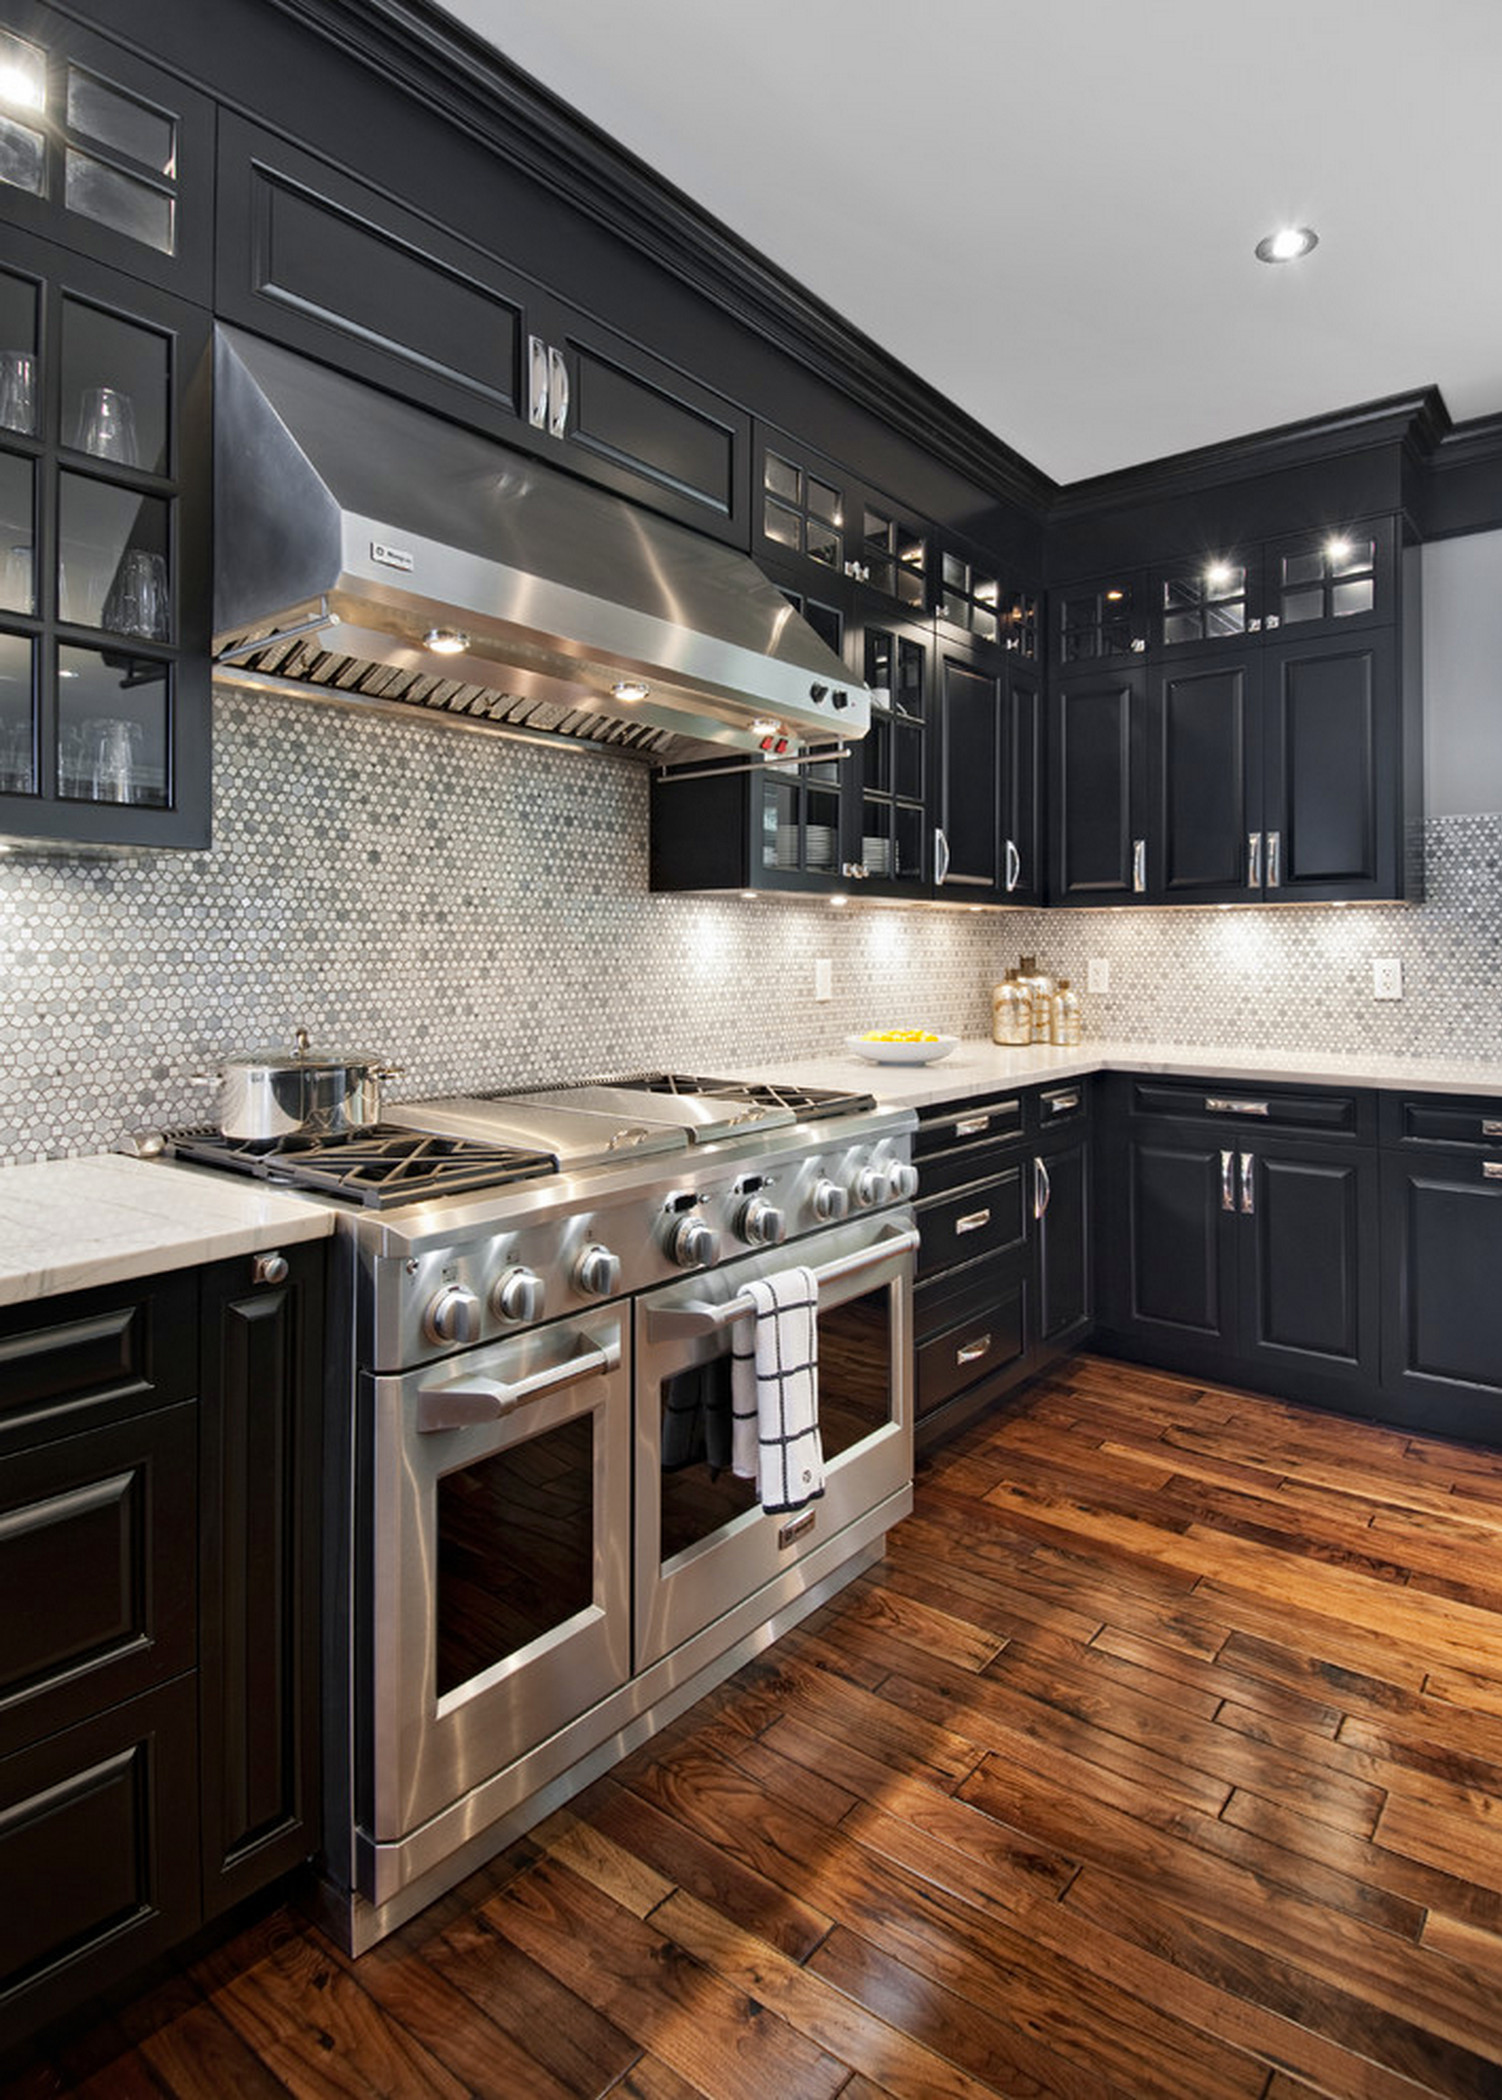 75 Beautiful Farmhouse Kitchen With Black Cabinets Pictures Ideas July 2021 Houzz